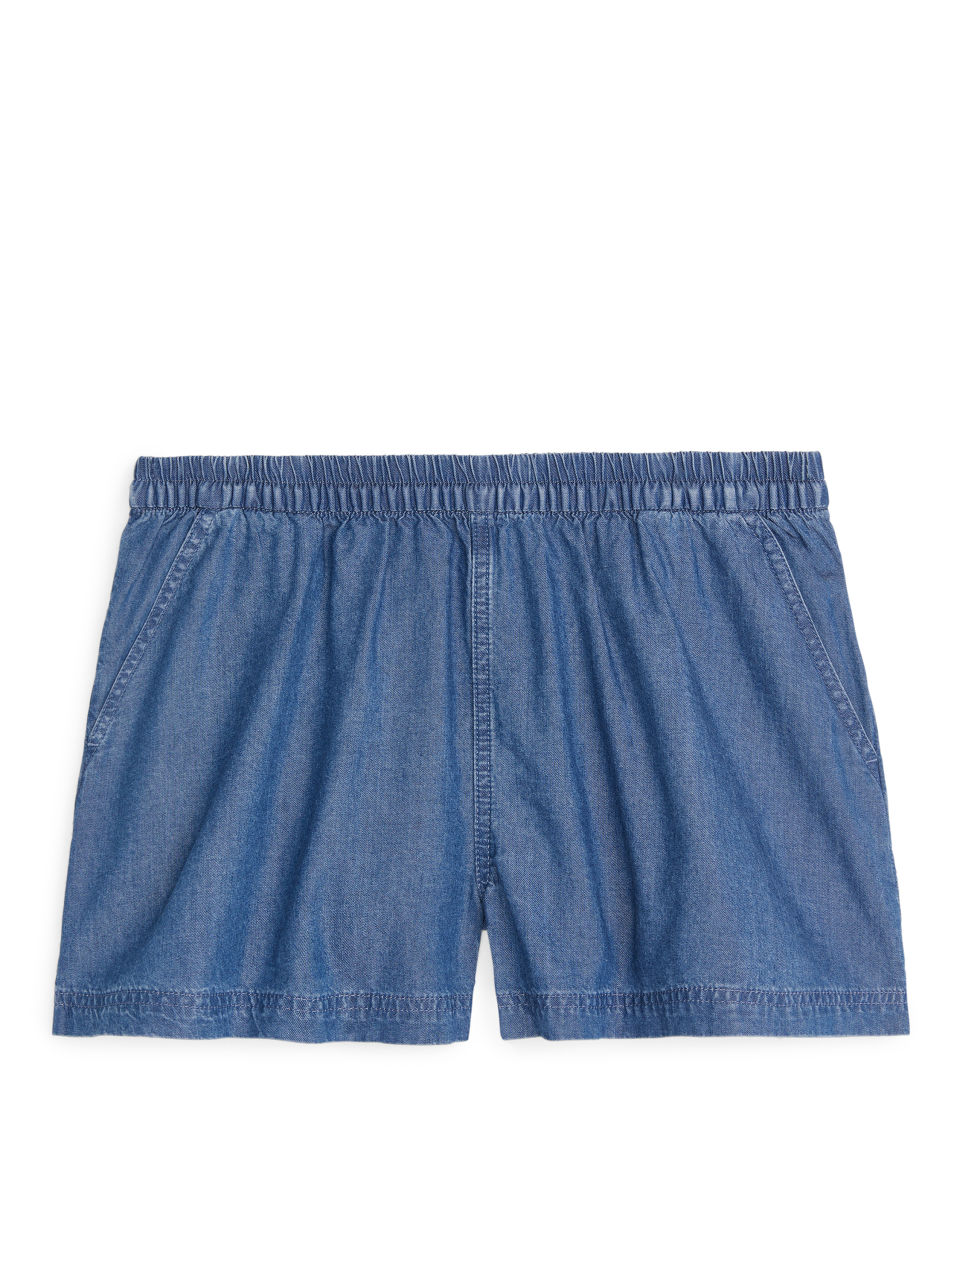 Pull-On Shorts - Blue